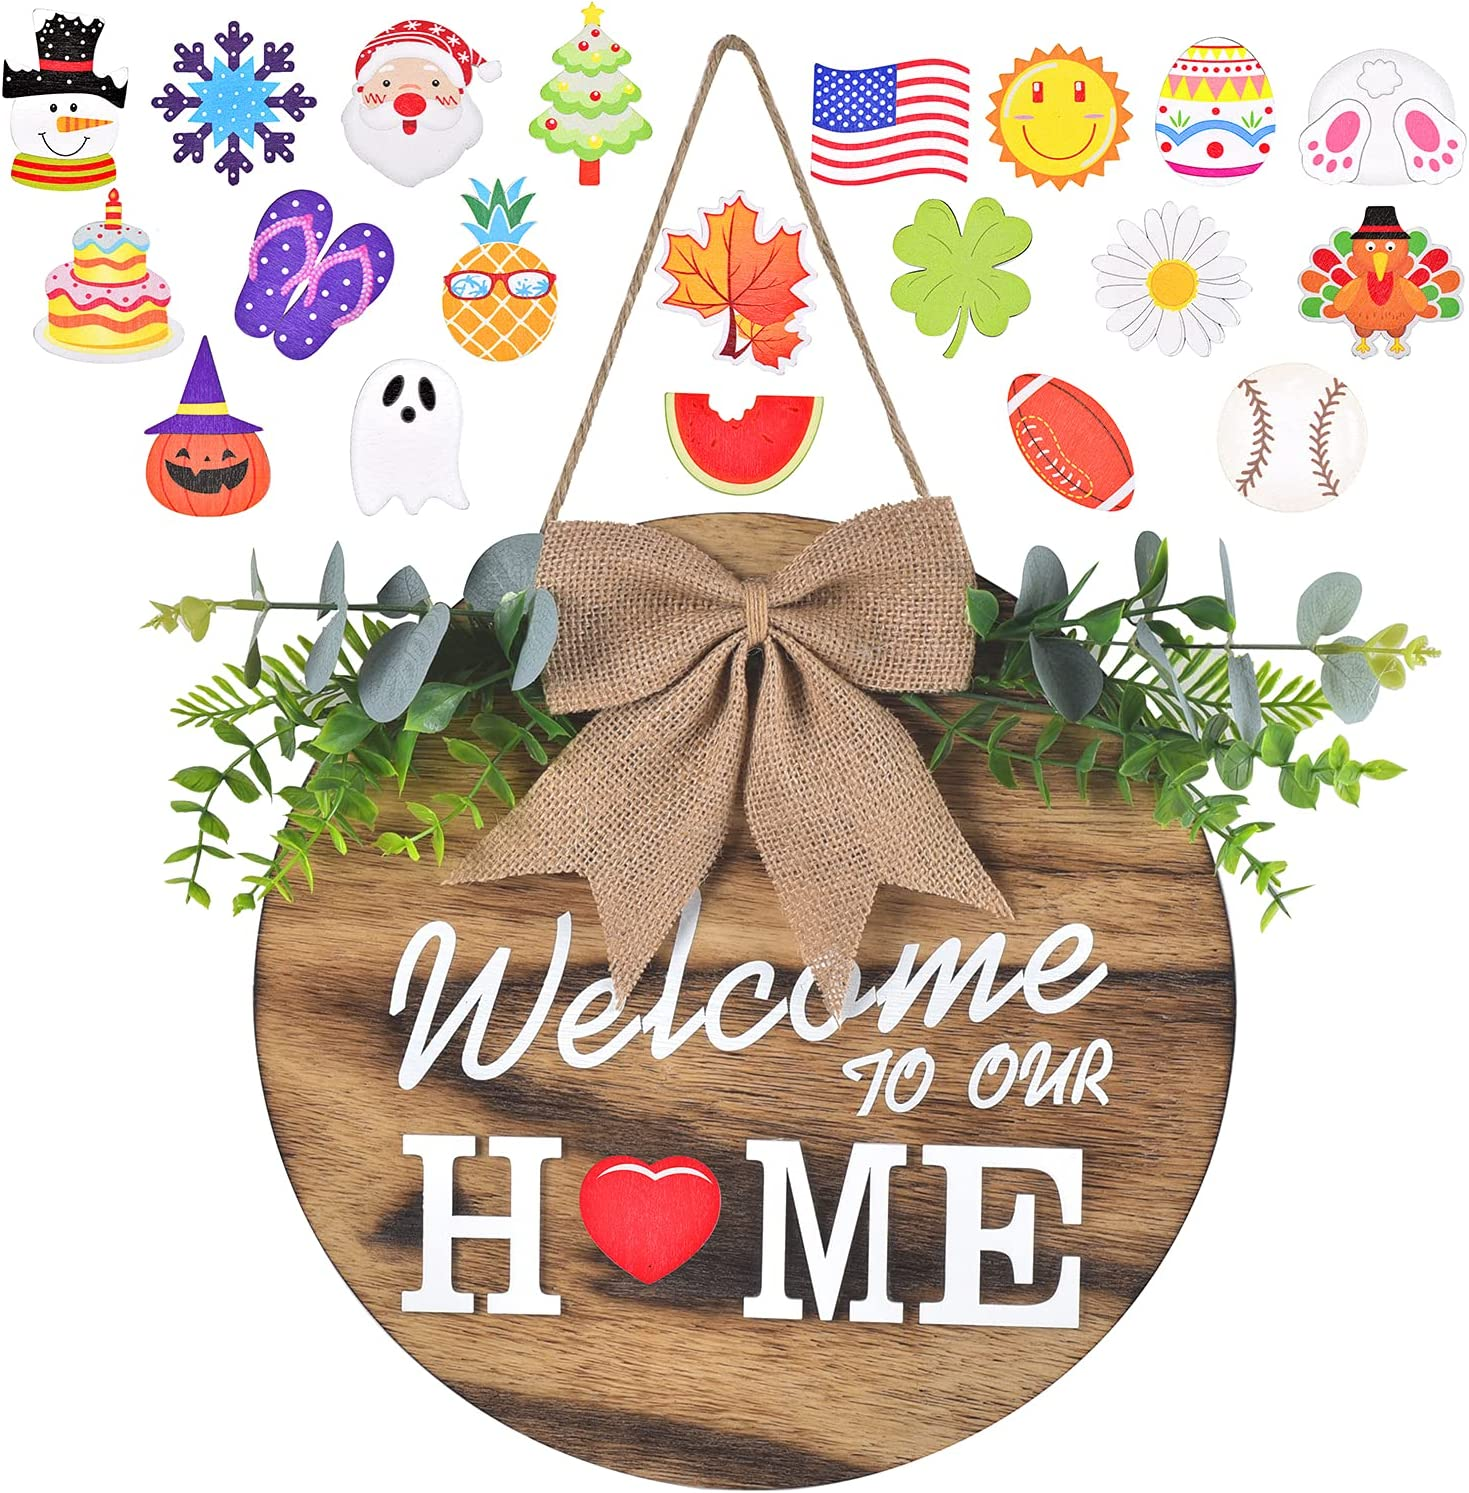 Interchangeable Welcome Home Sign, Seasonal Front Porch Door Decor With 21 Changeable Seasonal Icons for New Year/Christmas/Independence Day, Rustic Wood Wall Hanger for Housewarming Gift (12